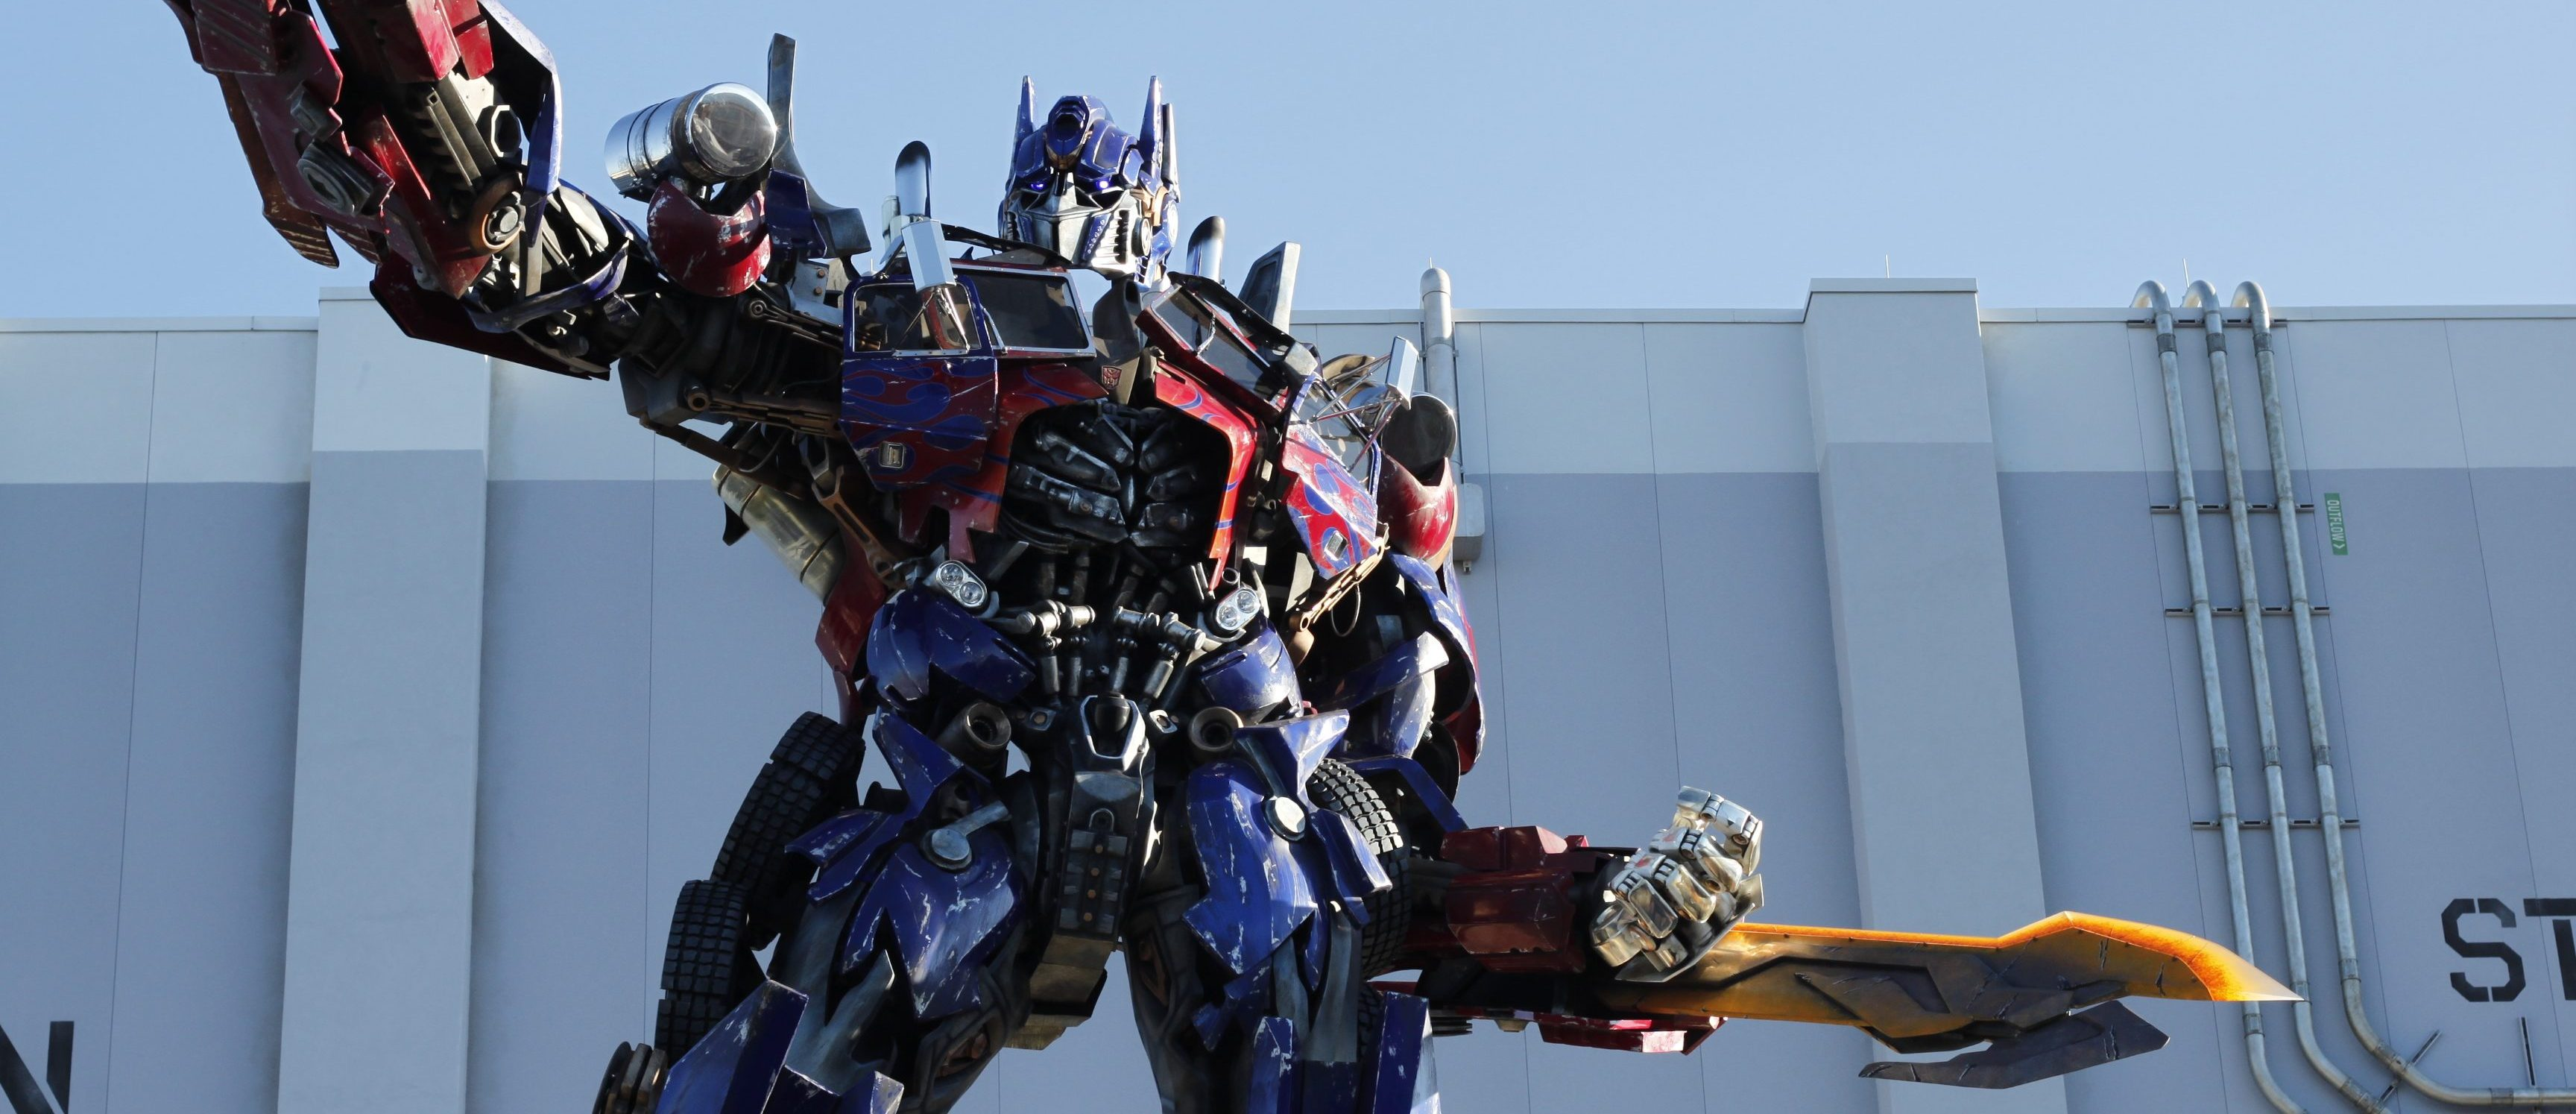 optimus prime with sword pointing out